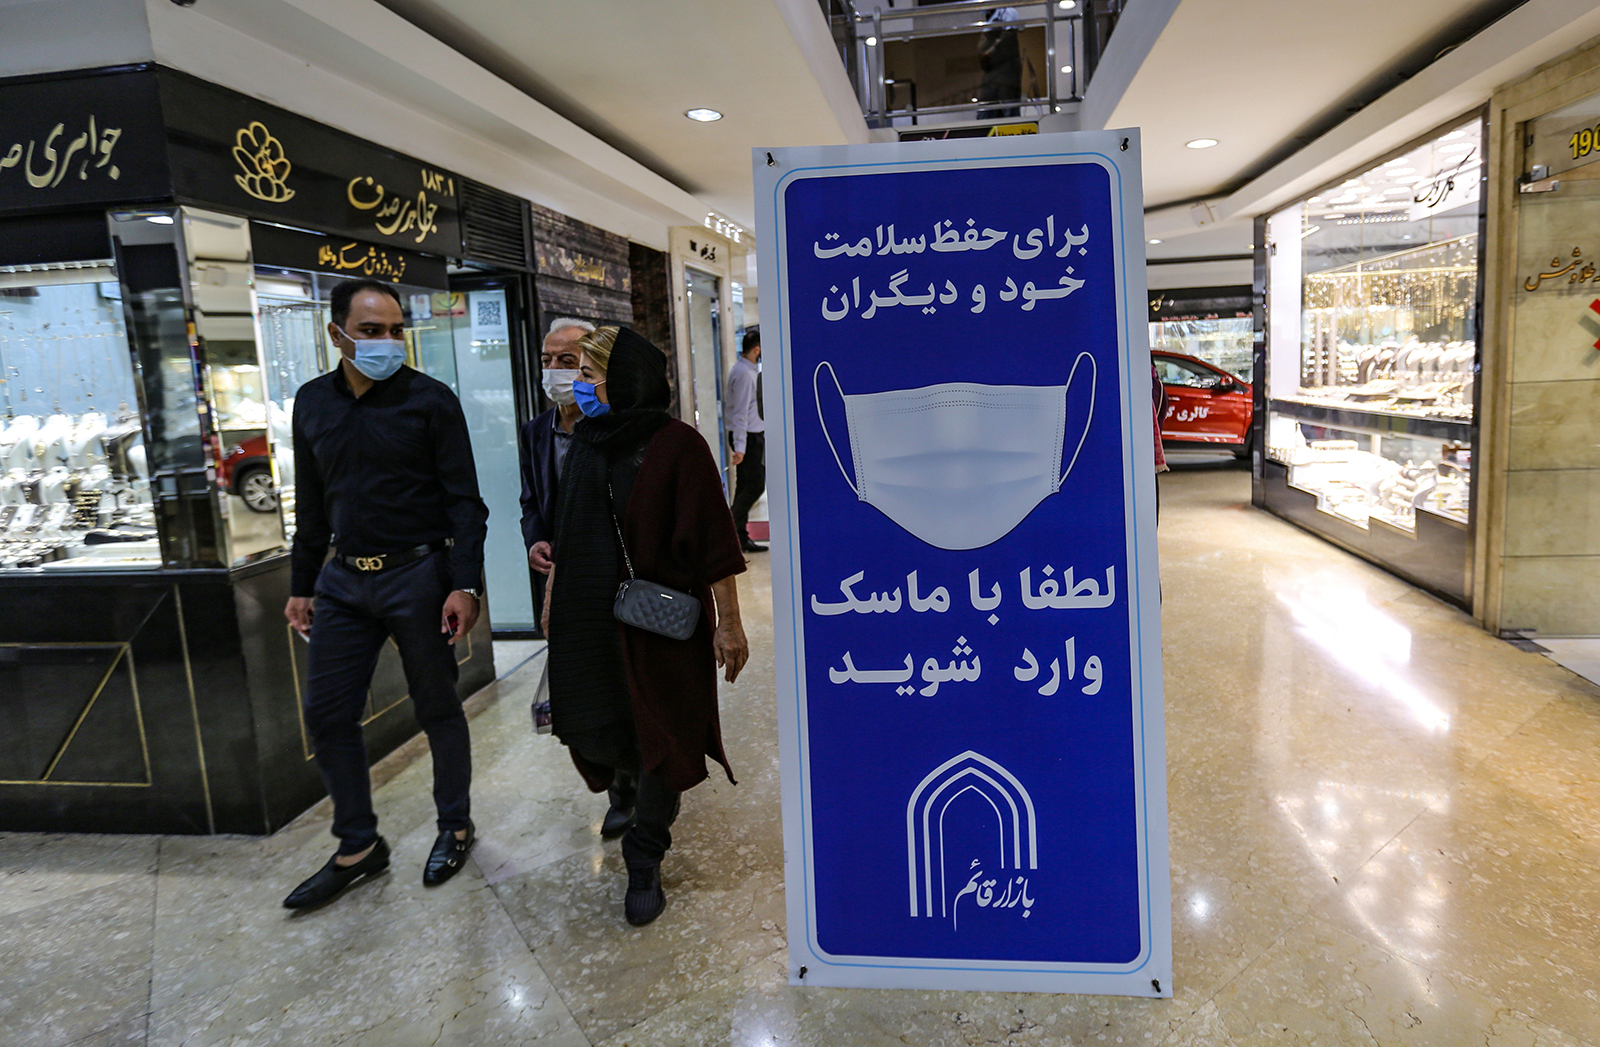 Iranians walk next to a sign advising people to wear masks on their way to shop in Tajrish square in the capital Tehran on November 1.